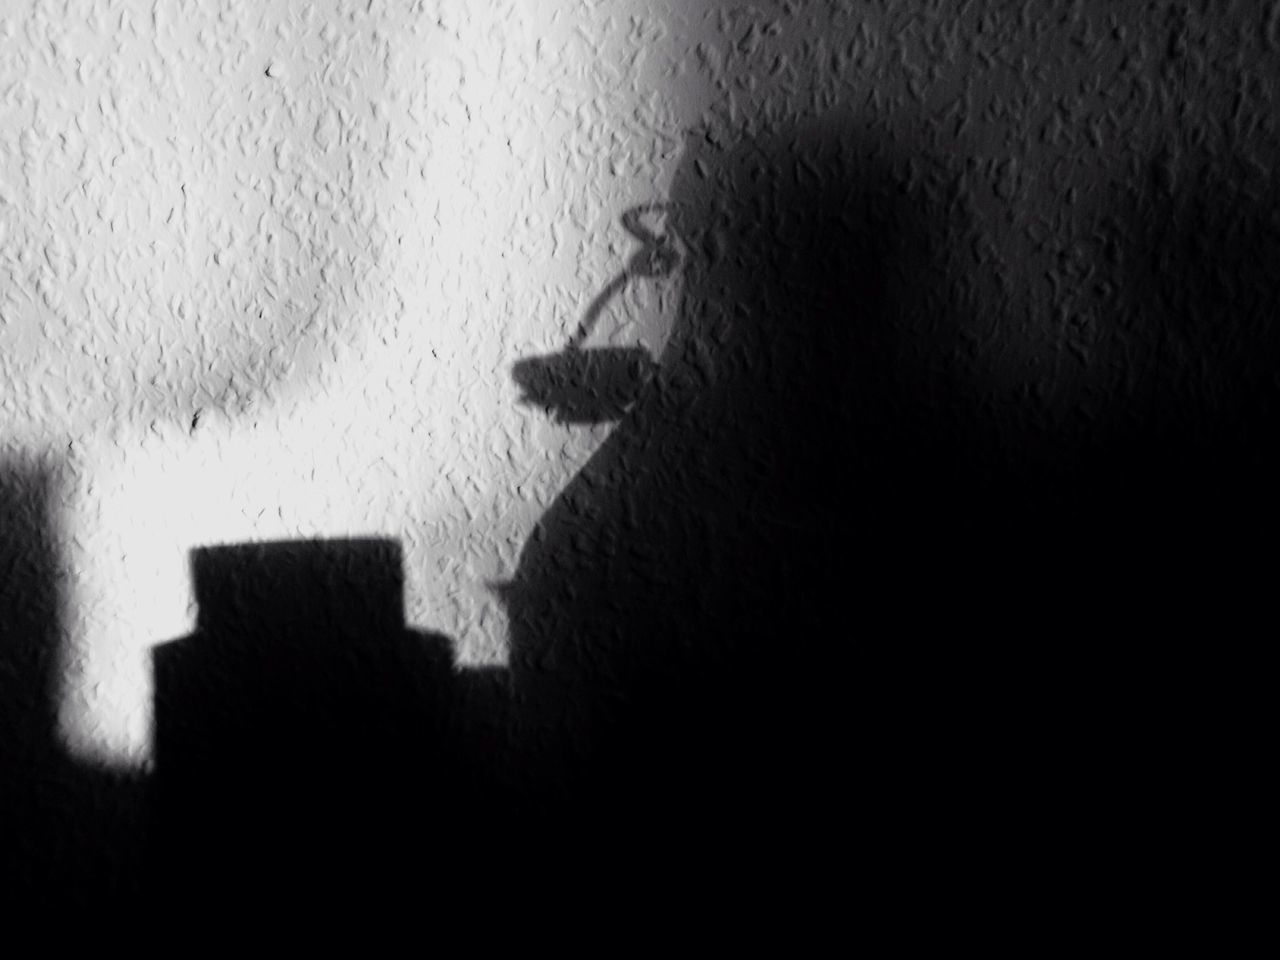 Shadow Indoors  No People Close-up Day Bottle Wall Shadowplay Black And White